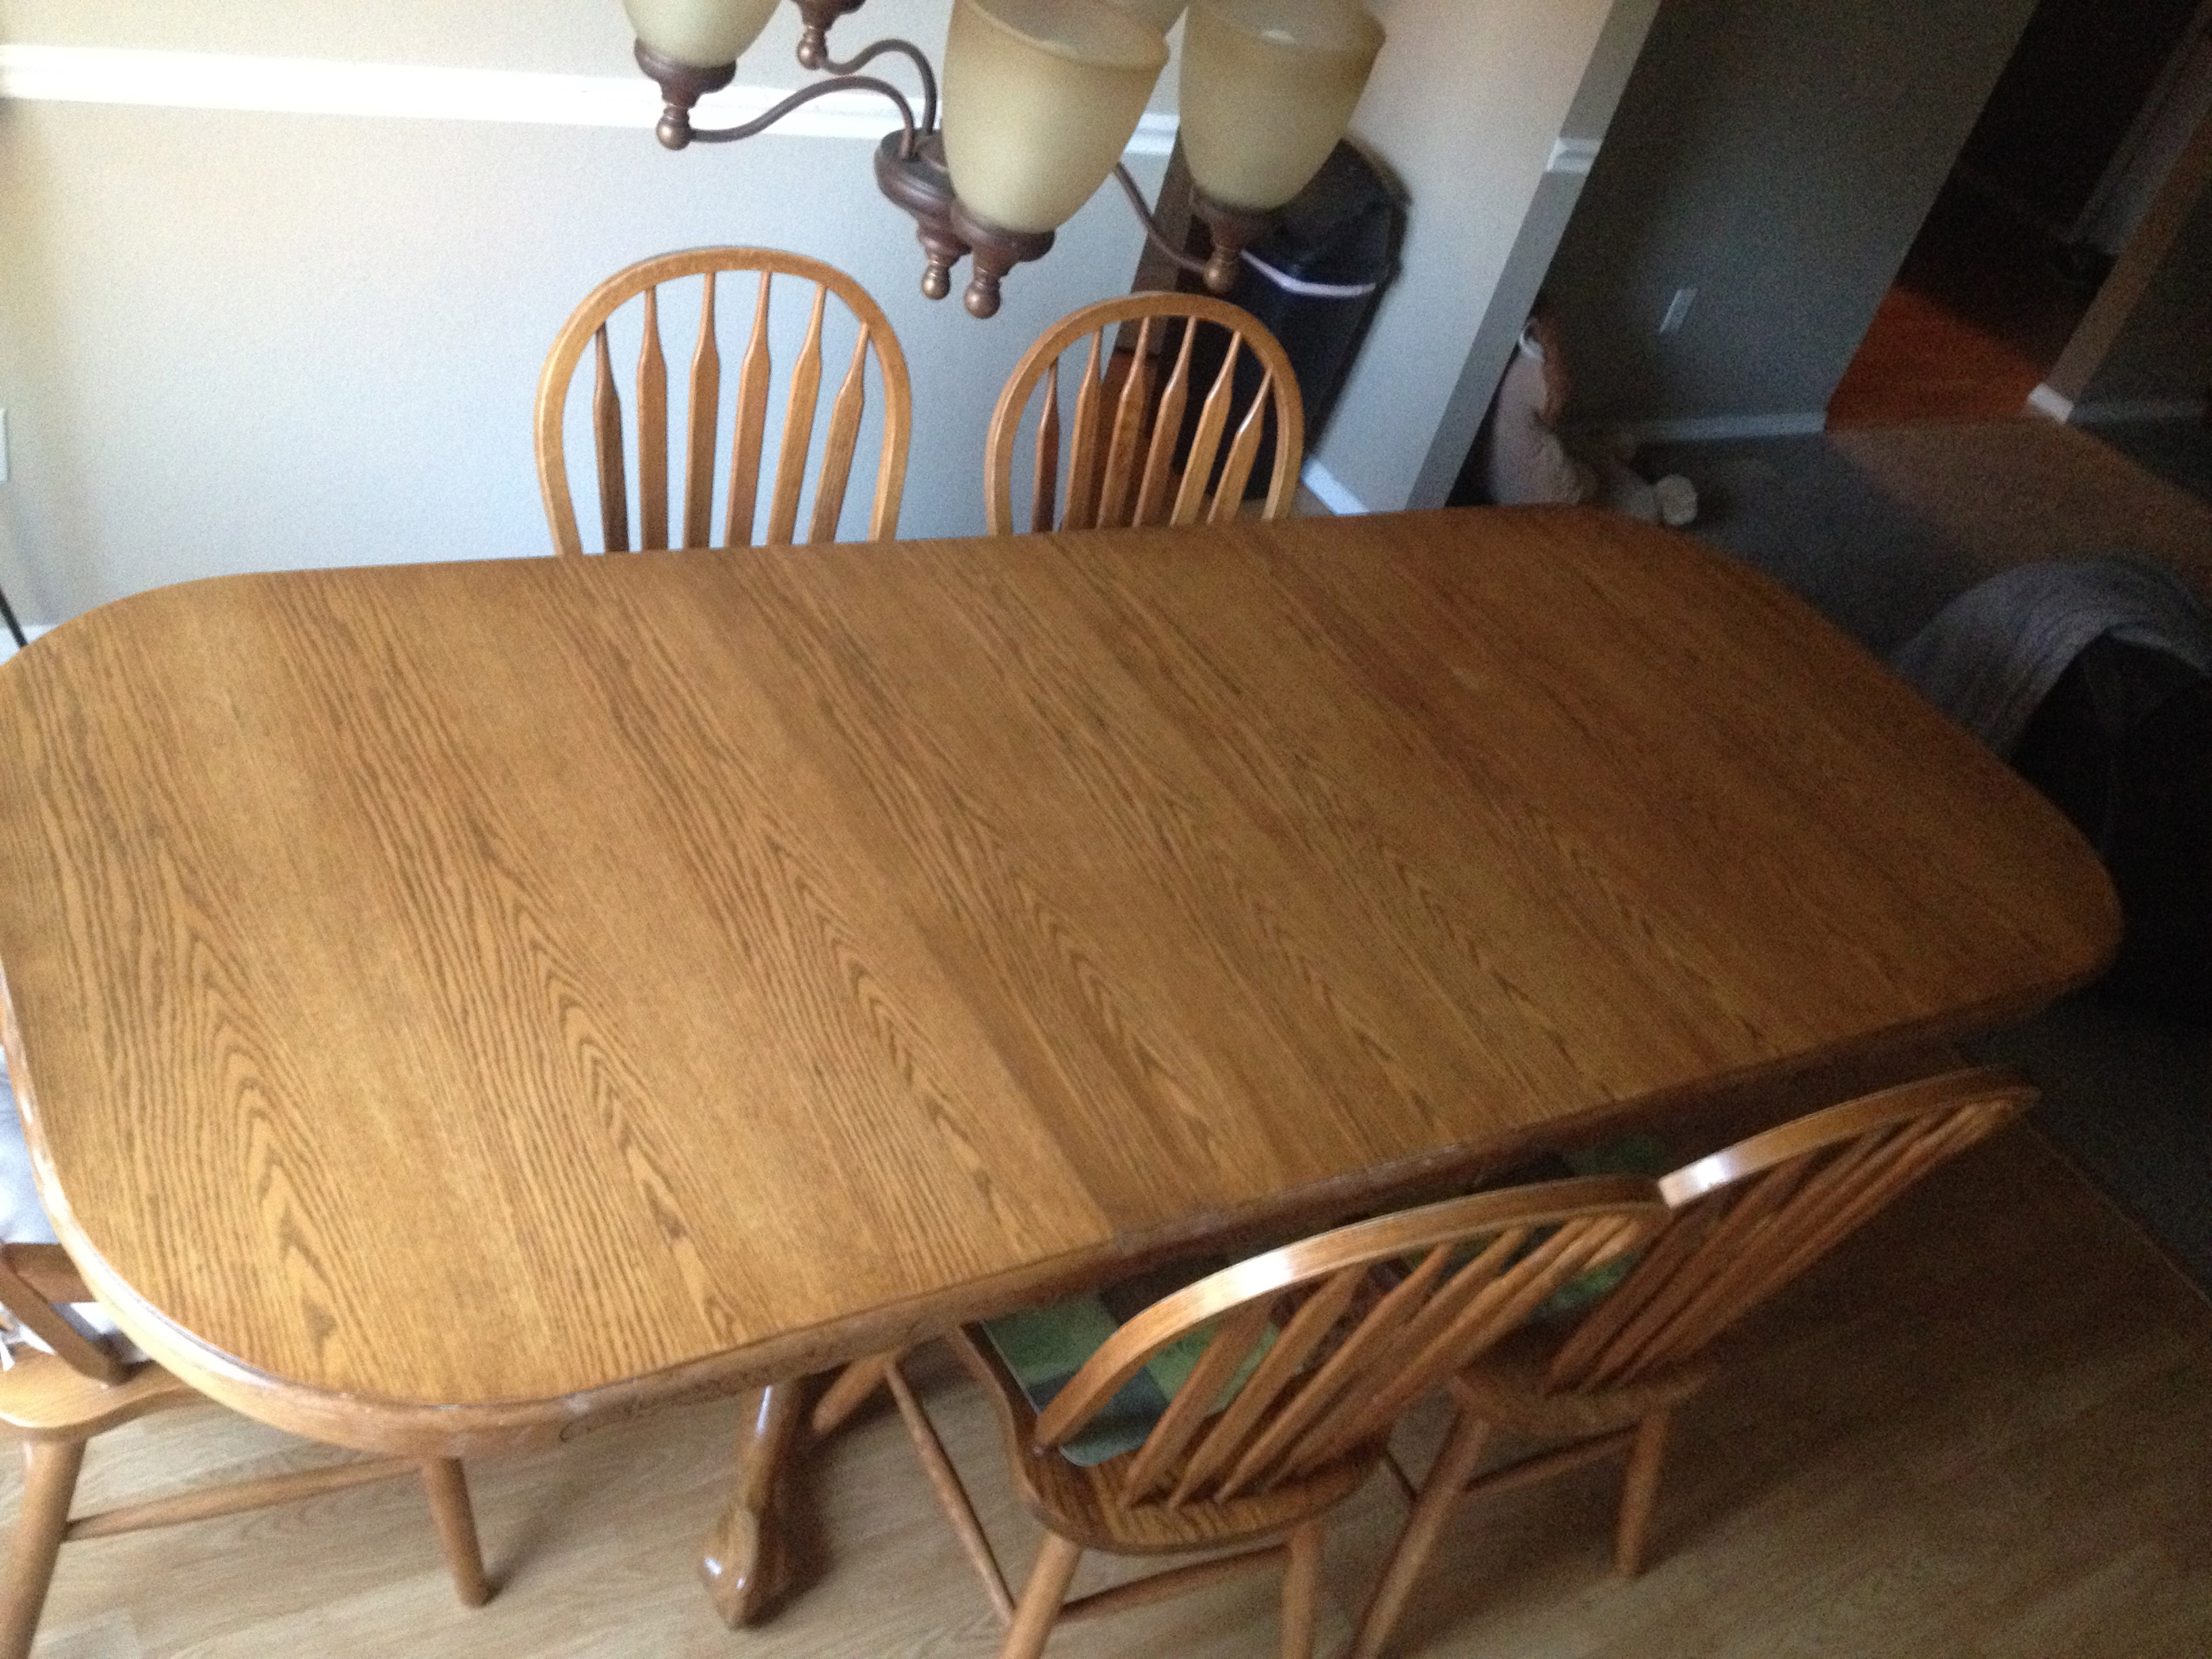 Refinish dining room table top | Love Laugh Be Healthy